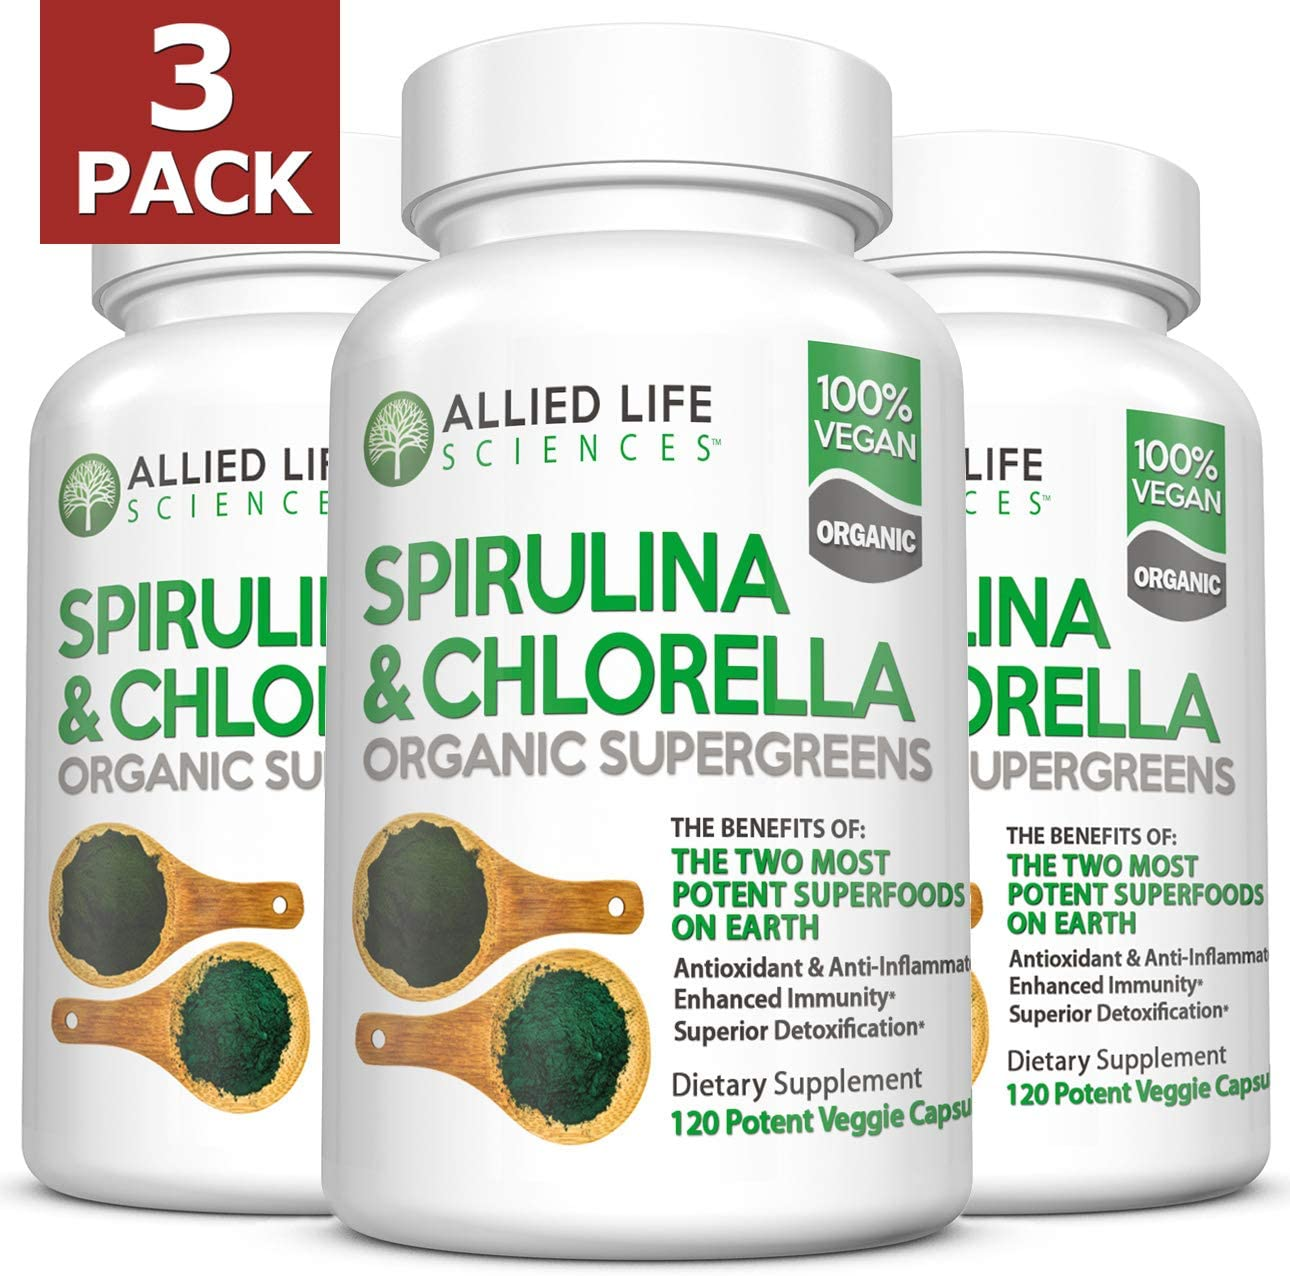 Allied Life Spirulina and Chlorella Organic Chlorophyll Vegan Protein Powder Green Superfood Capsules Natural Anti Aging Detox Cleanse 3 Pack